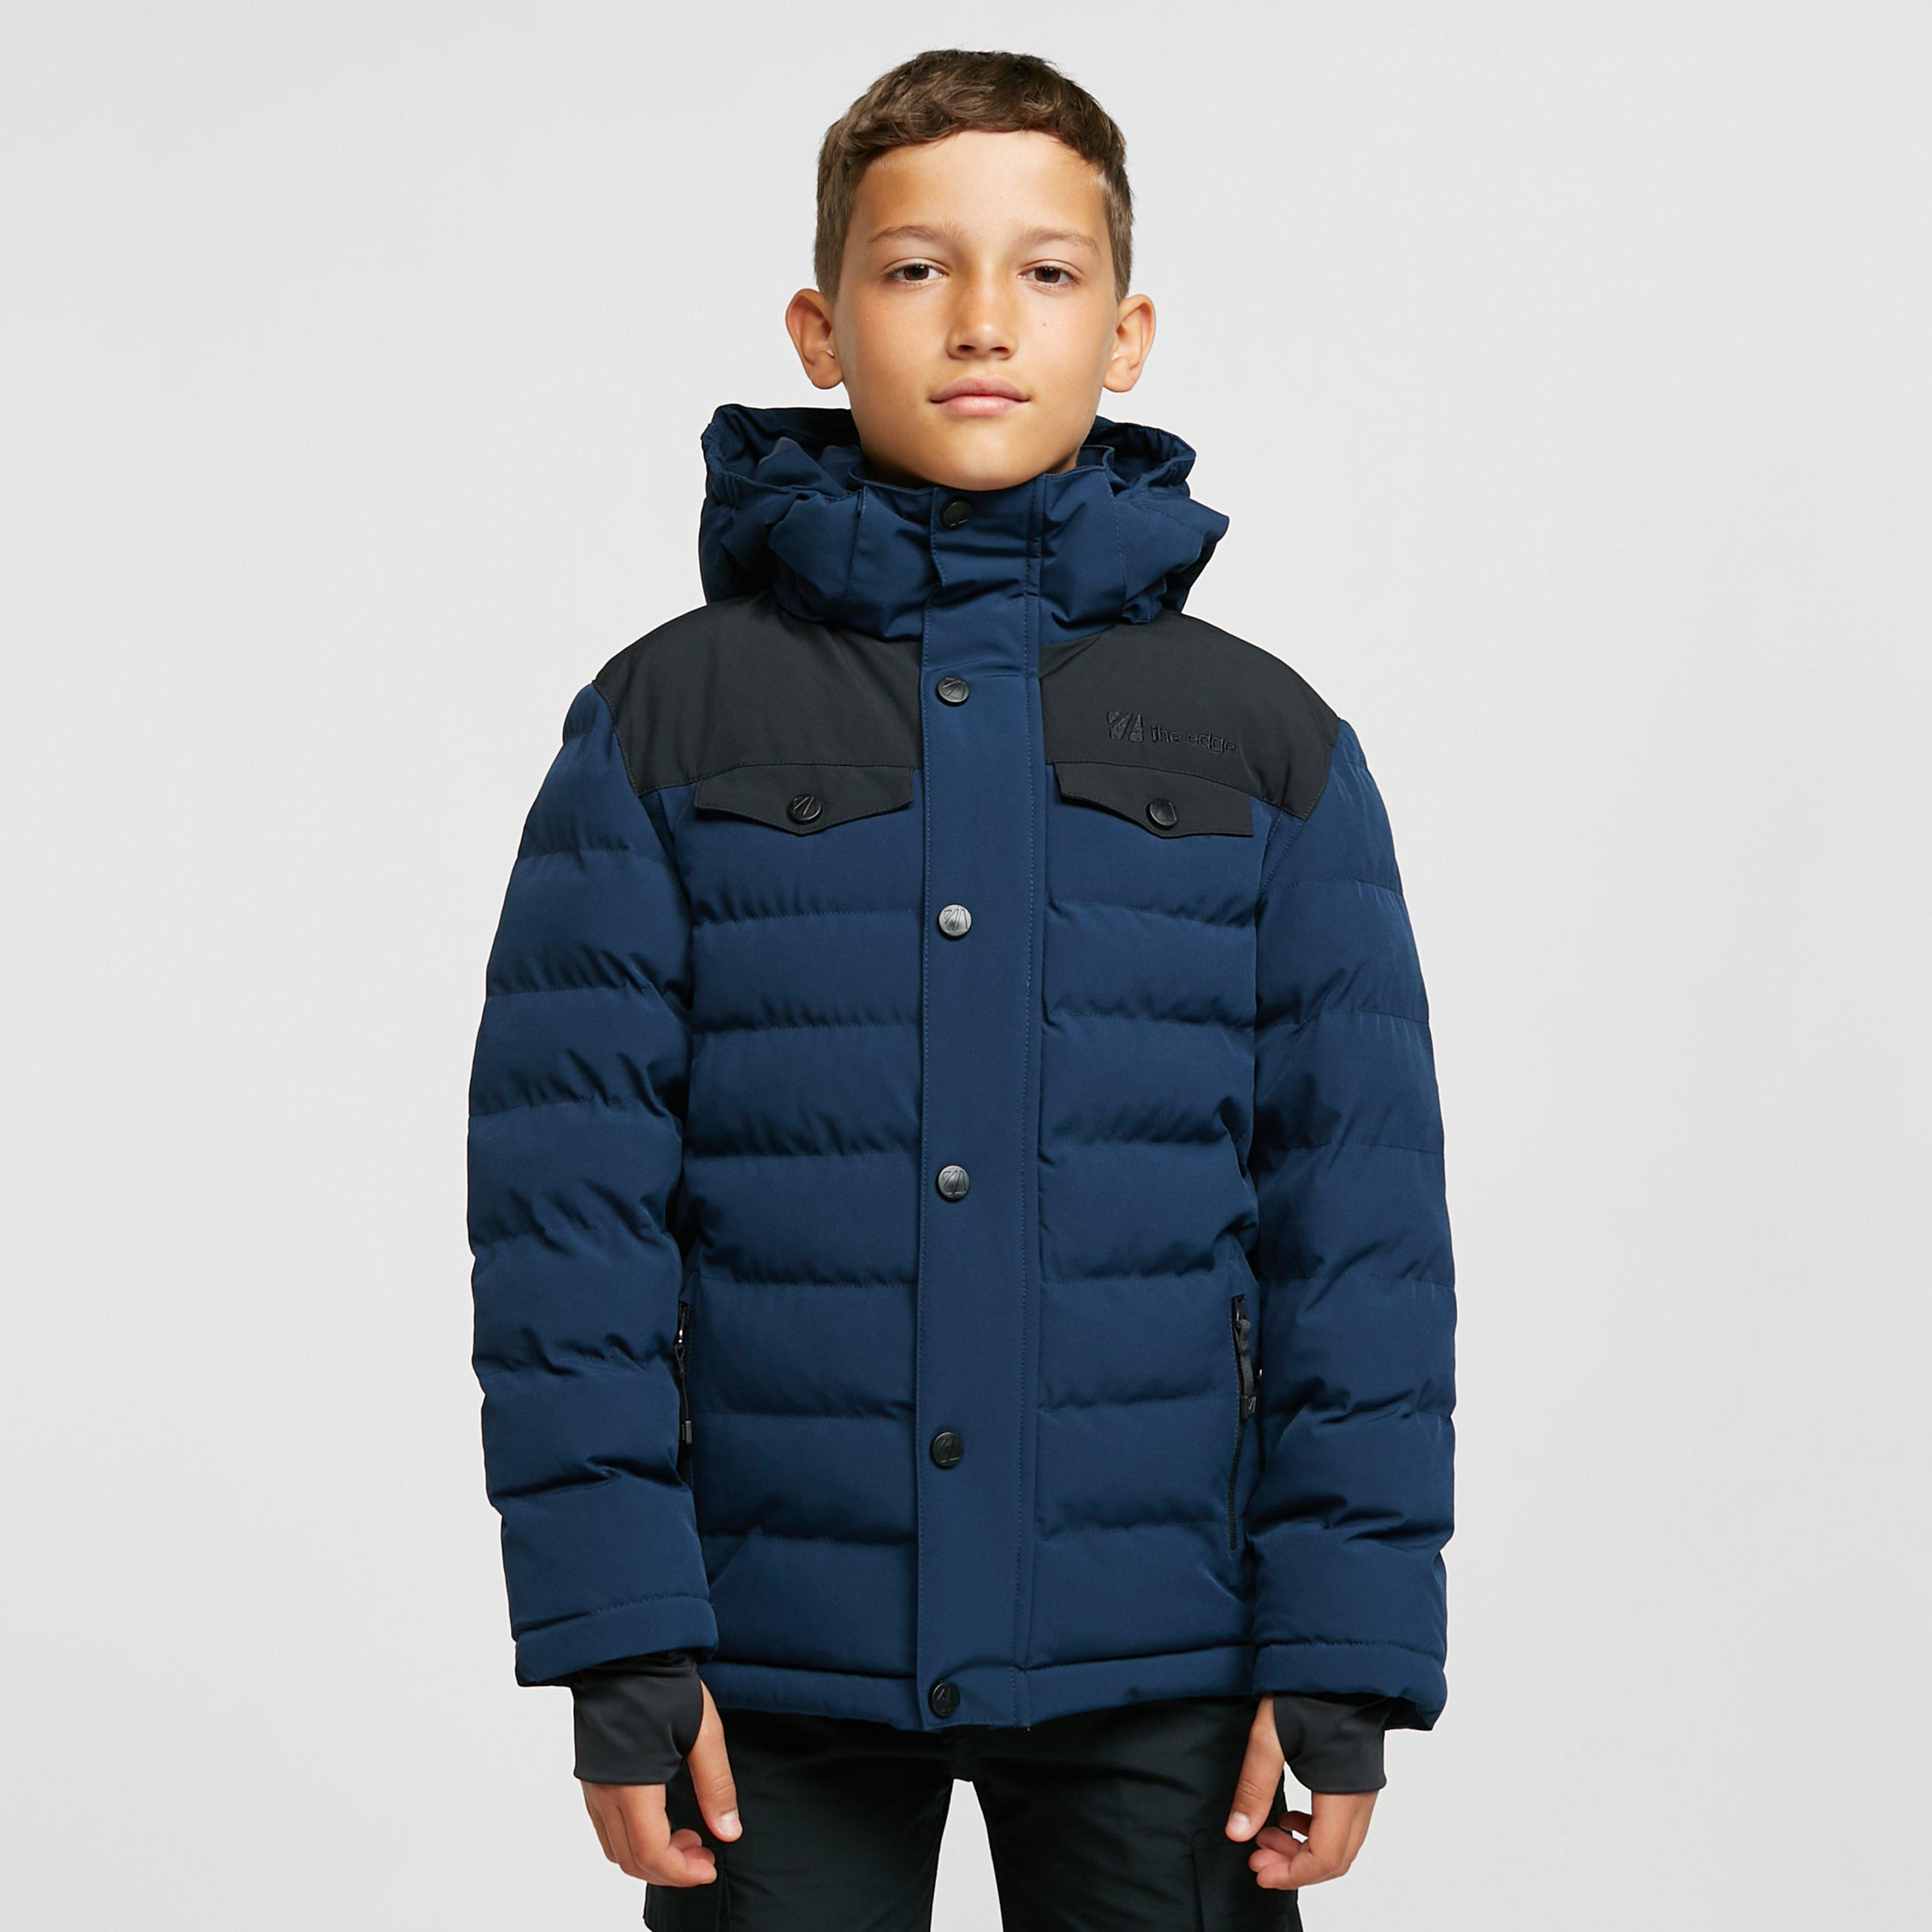 The Edge Kids Banff Insulated Jacket (ages 13-16) - Navy/navy  Navy/navy